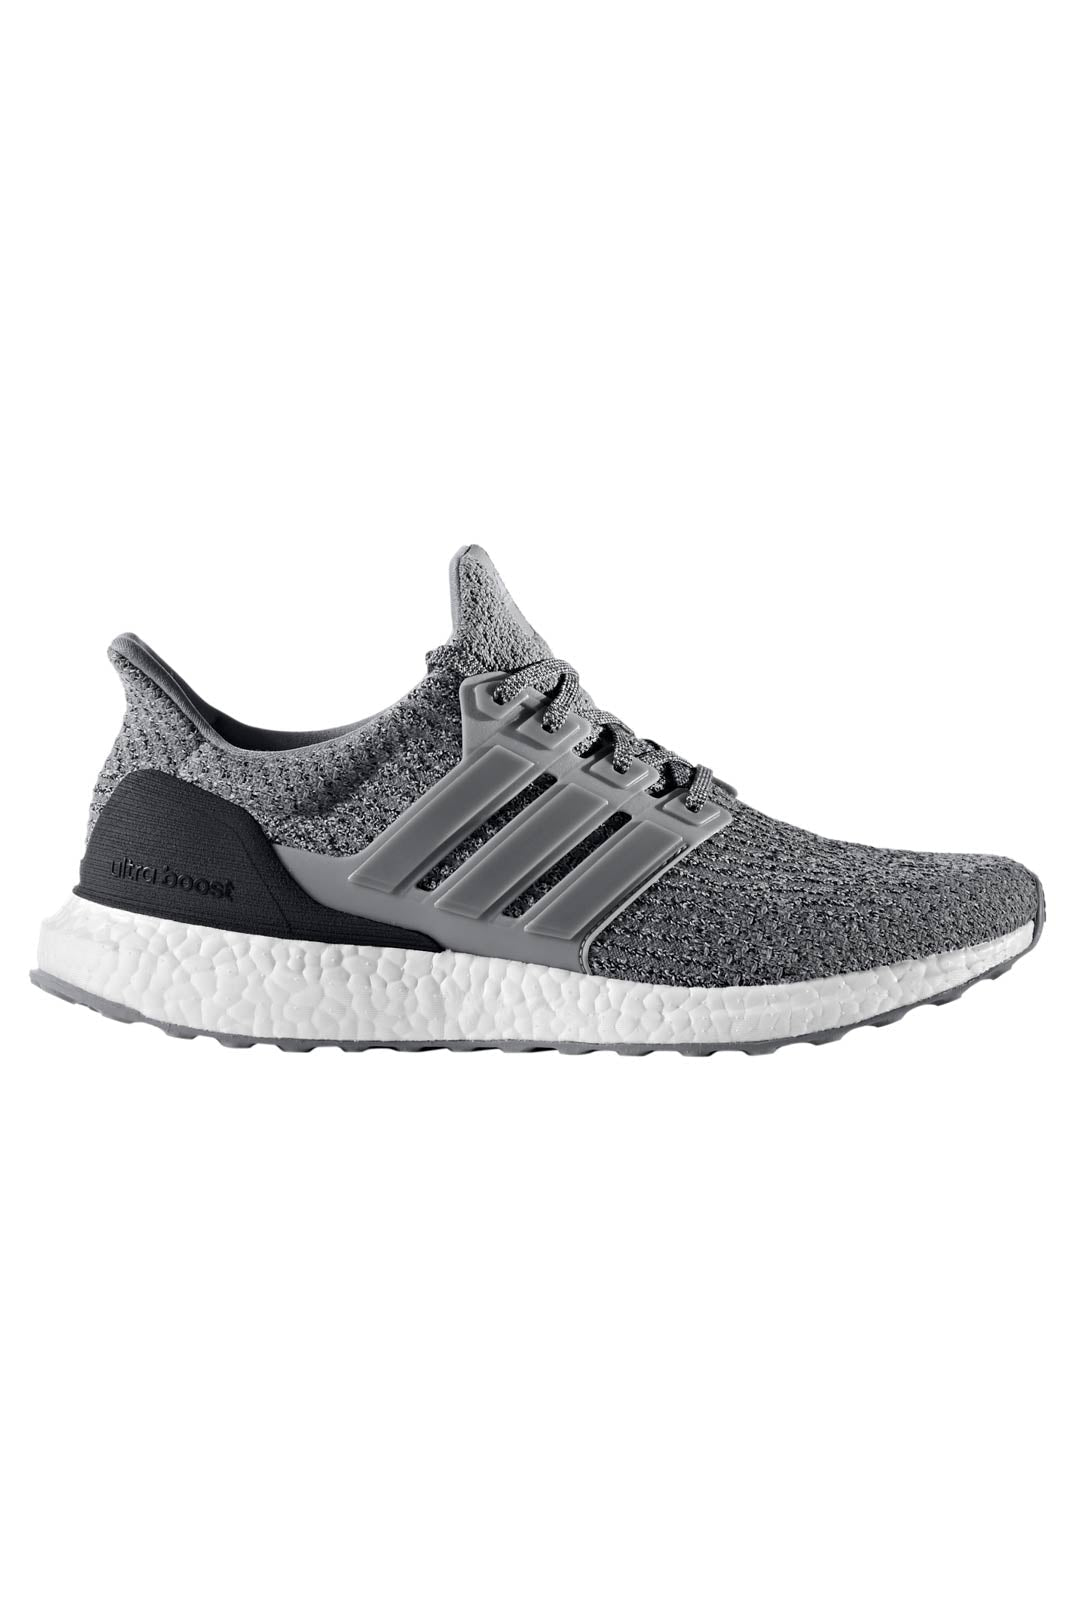 ADIDAS Ultra Boost 3.0 Grey Three image 1 - The Sports Edit